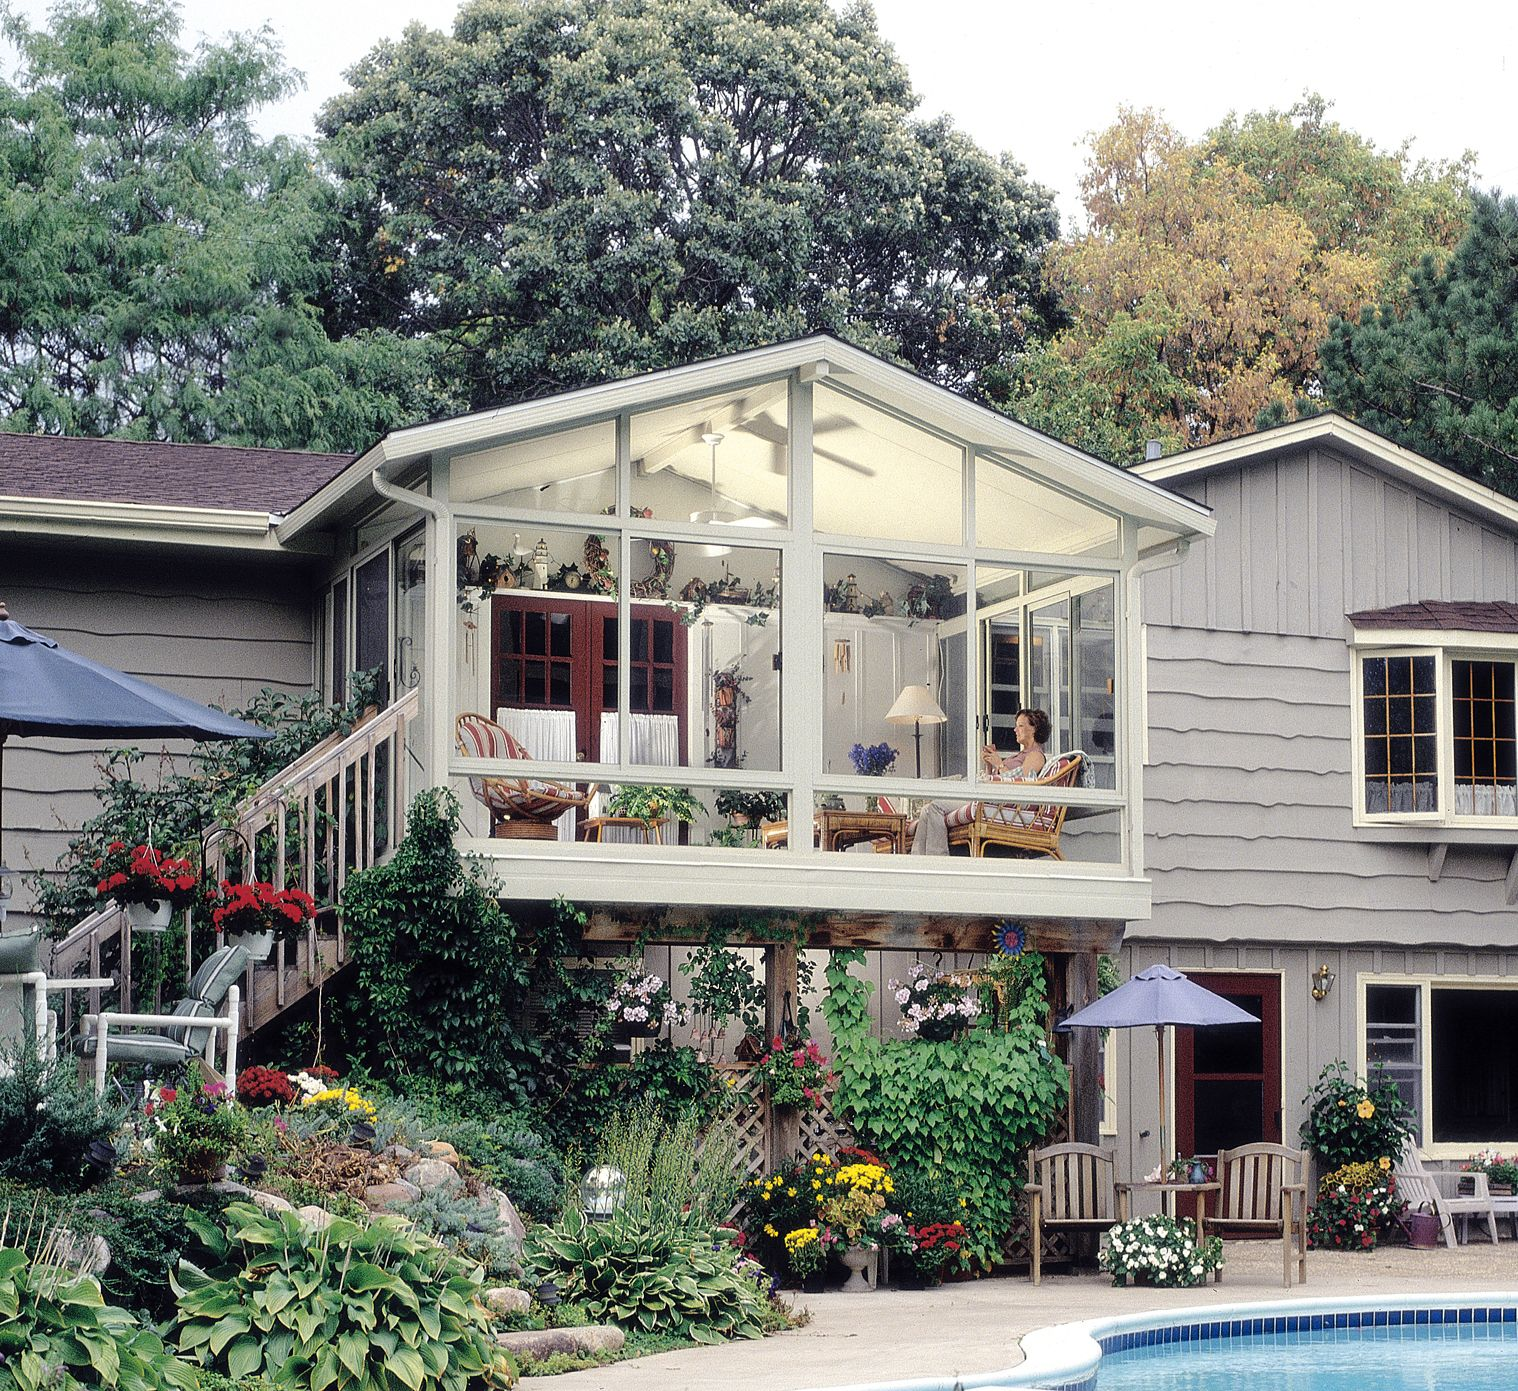 betterliving sunrooms builds right on top your deck or patioeven second